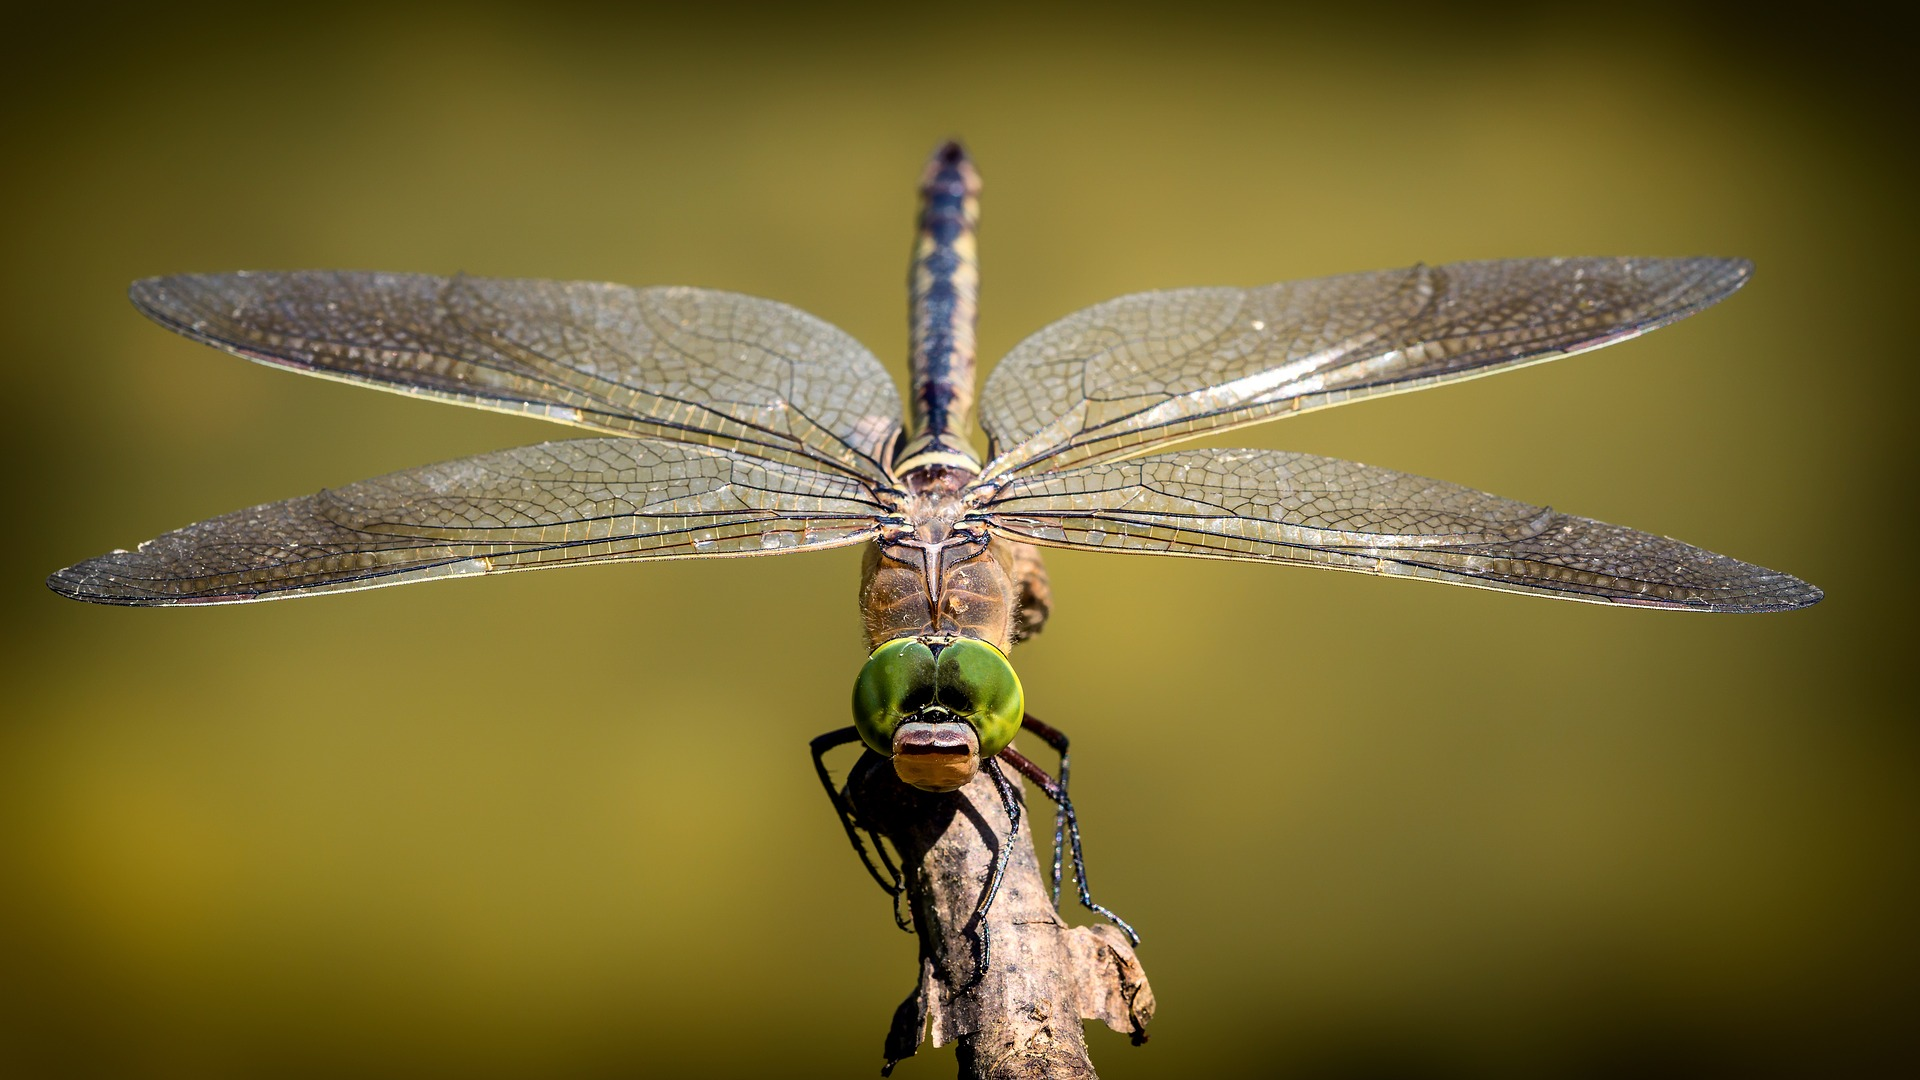 Dragonflies and Damselflies, almost perfect creatures from the very beginning